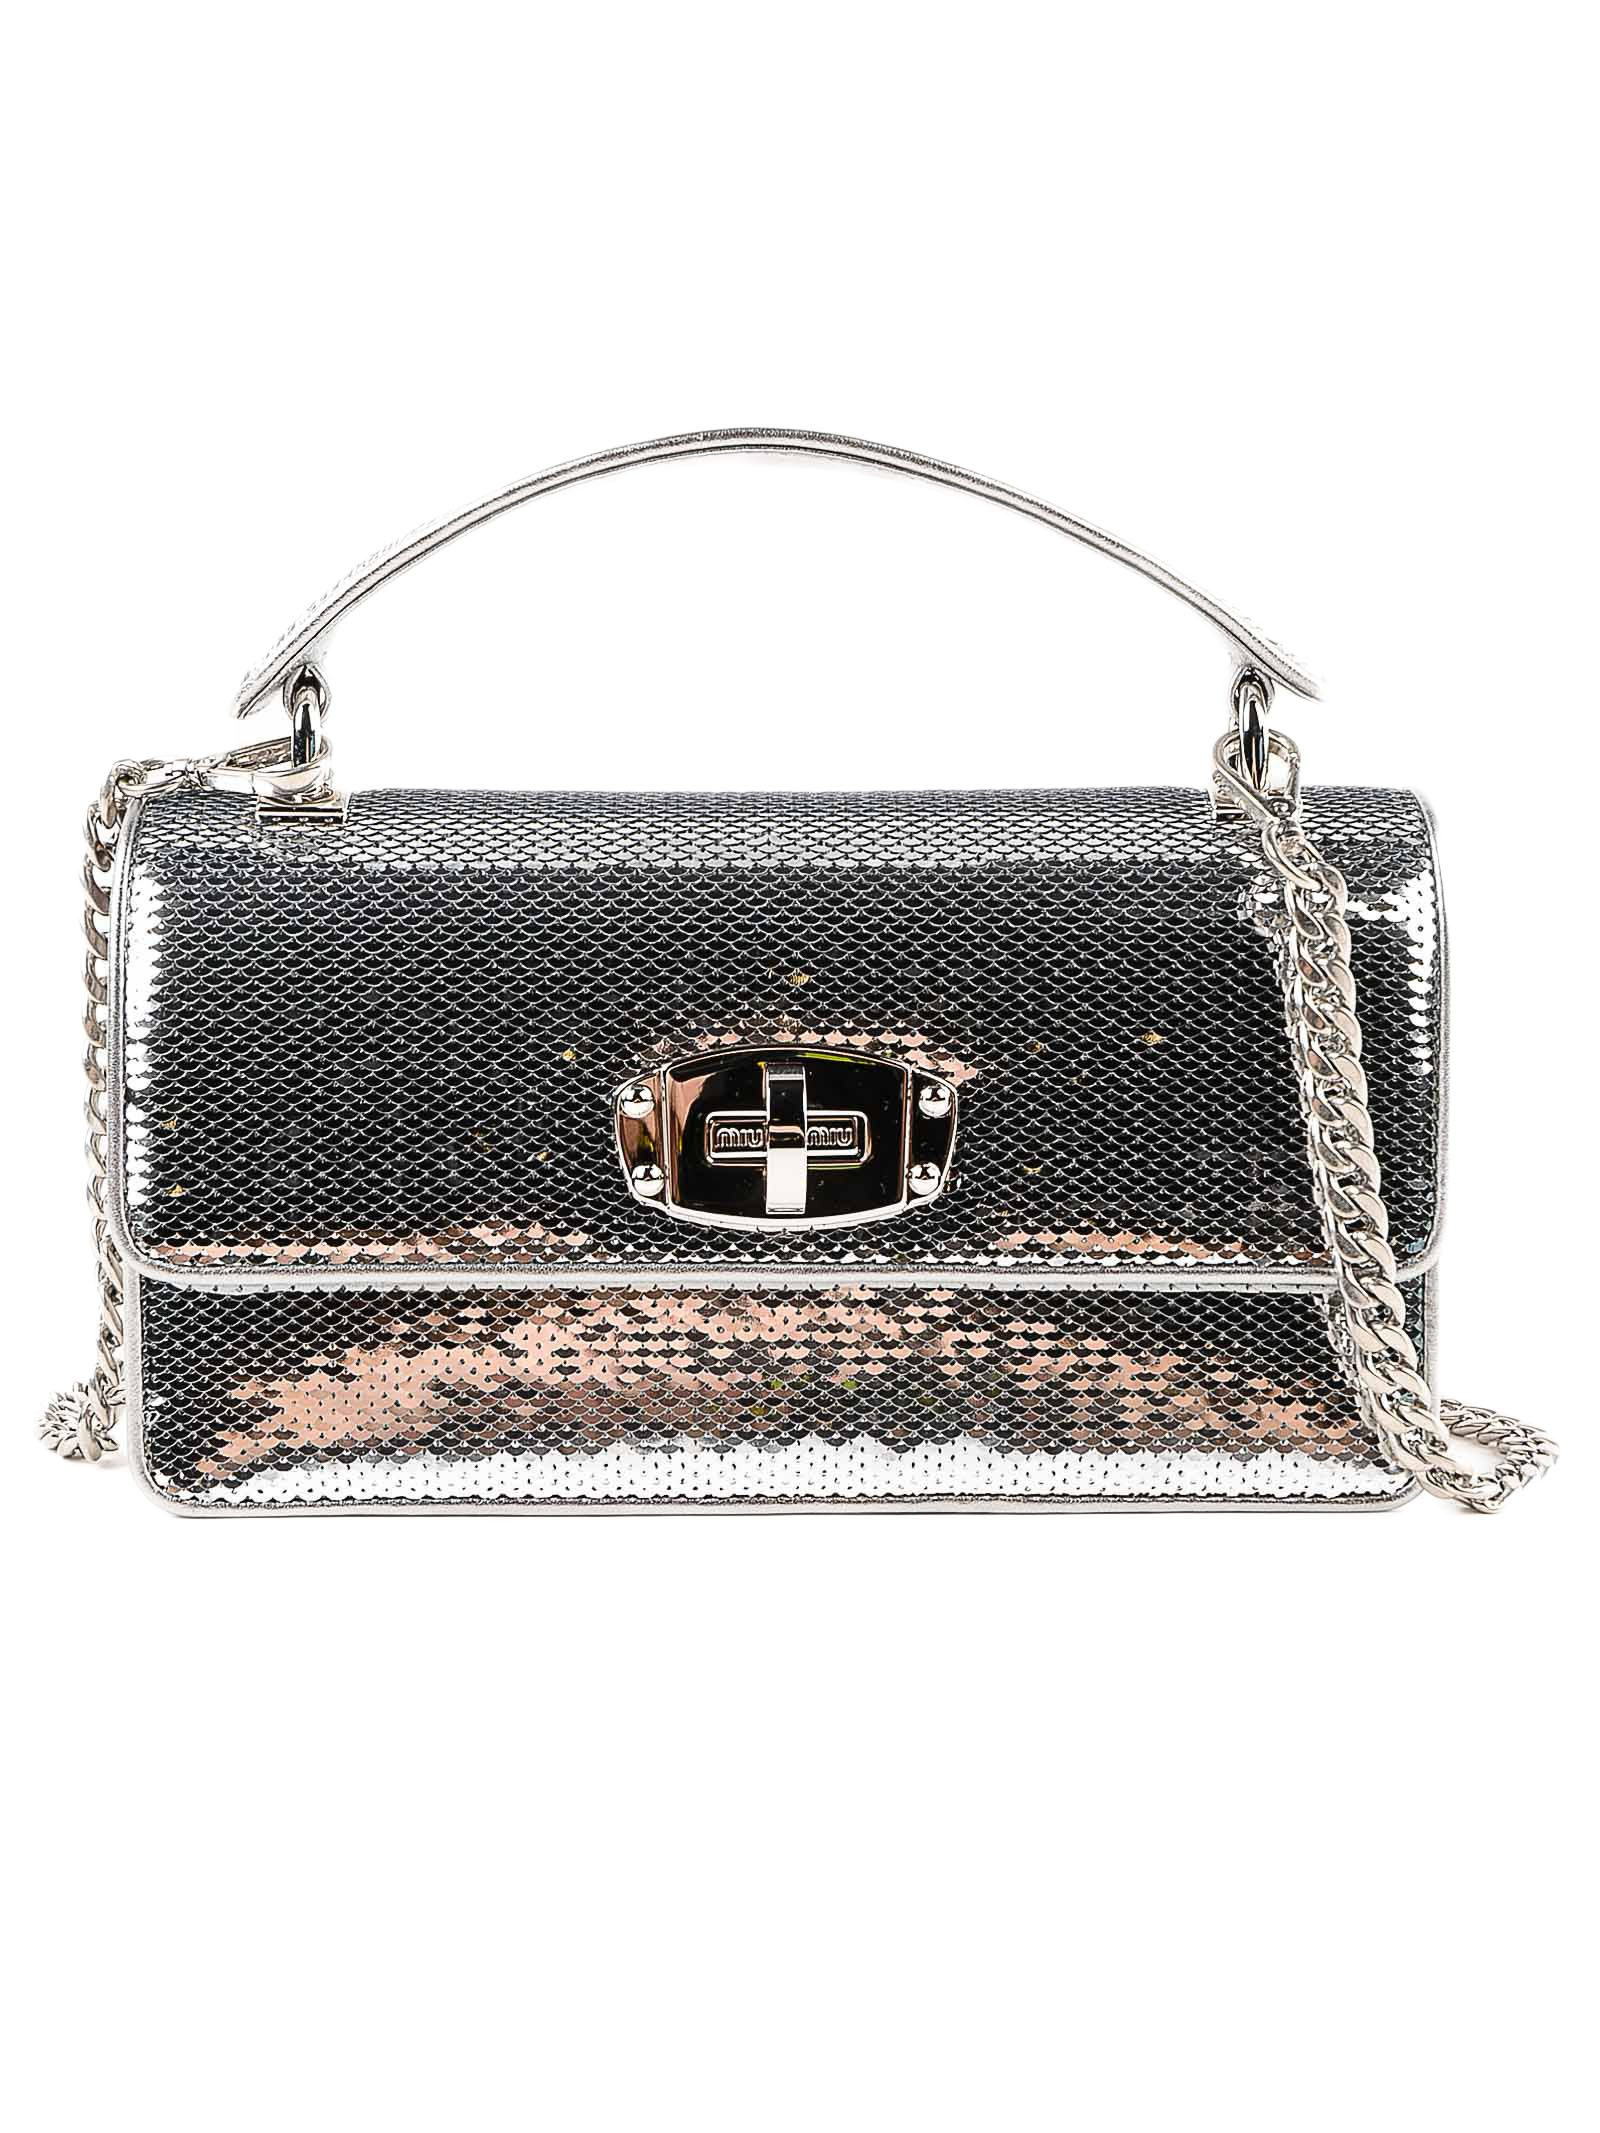 Miu Miu Sequin Scaled Mini Shoulder Bag